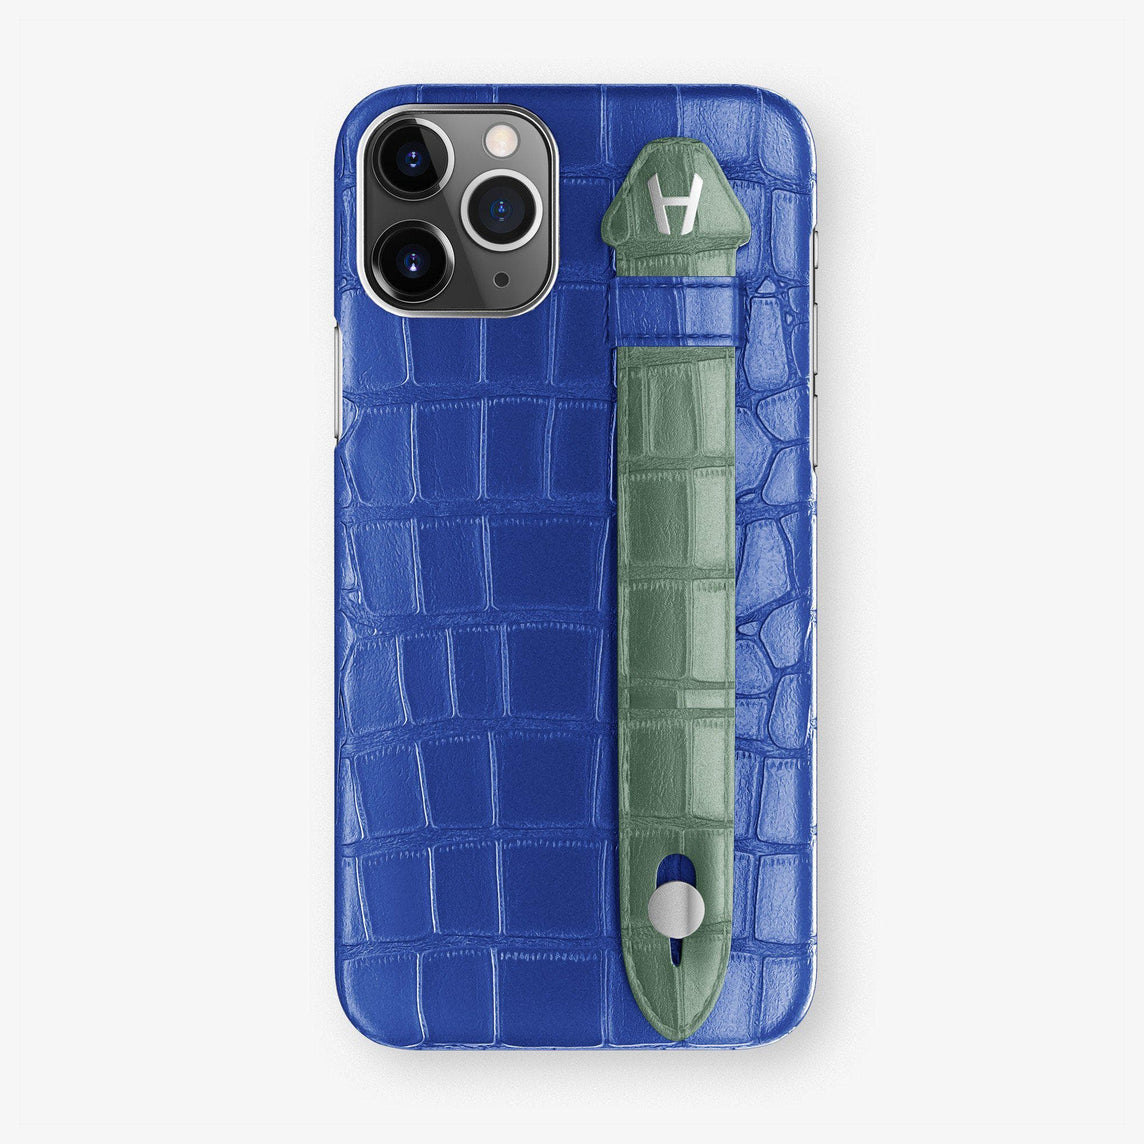 Alligator Finger Case iPhone 11 Pro | Peony Blue/Green Emerald - Stainless Steel